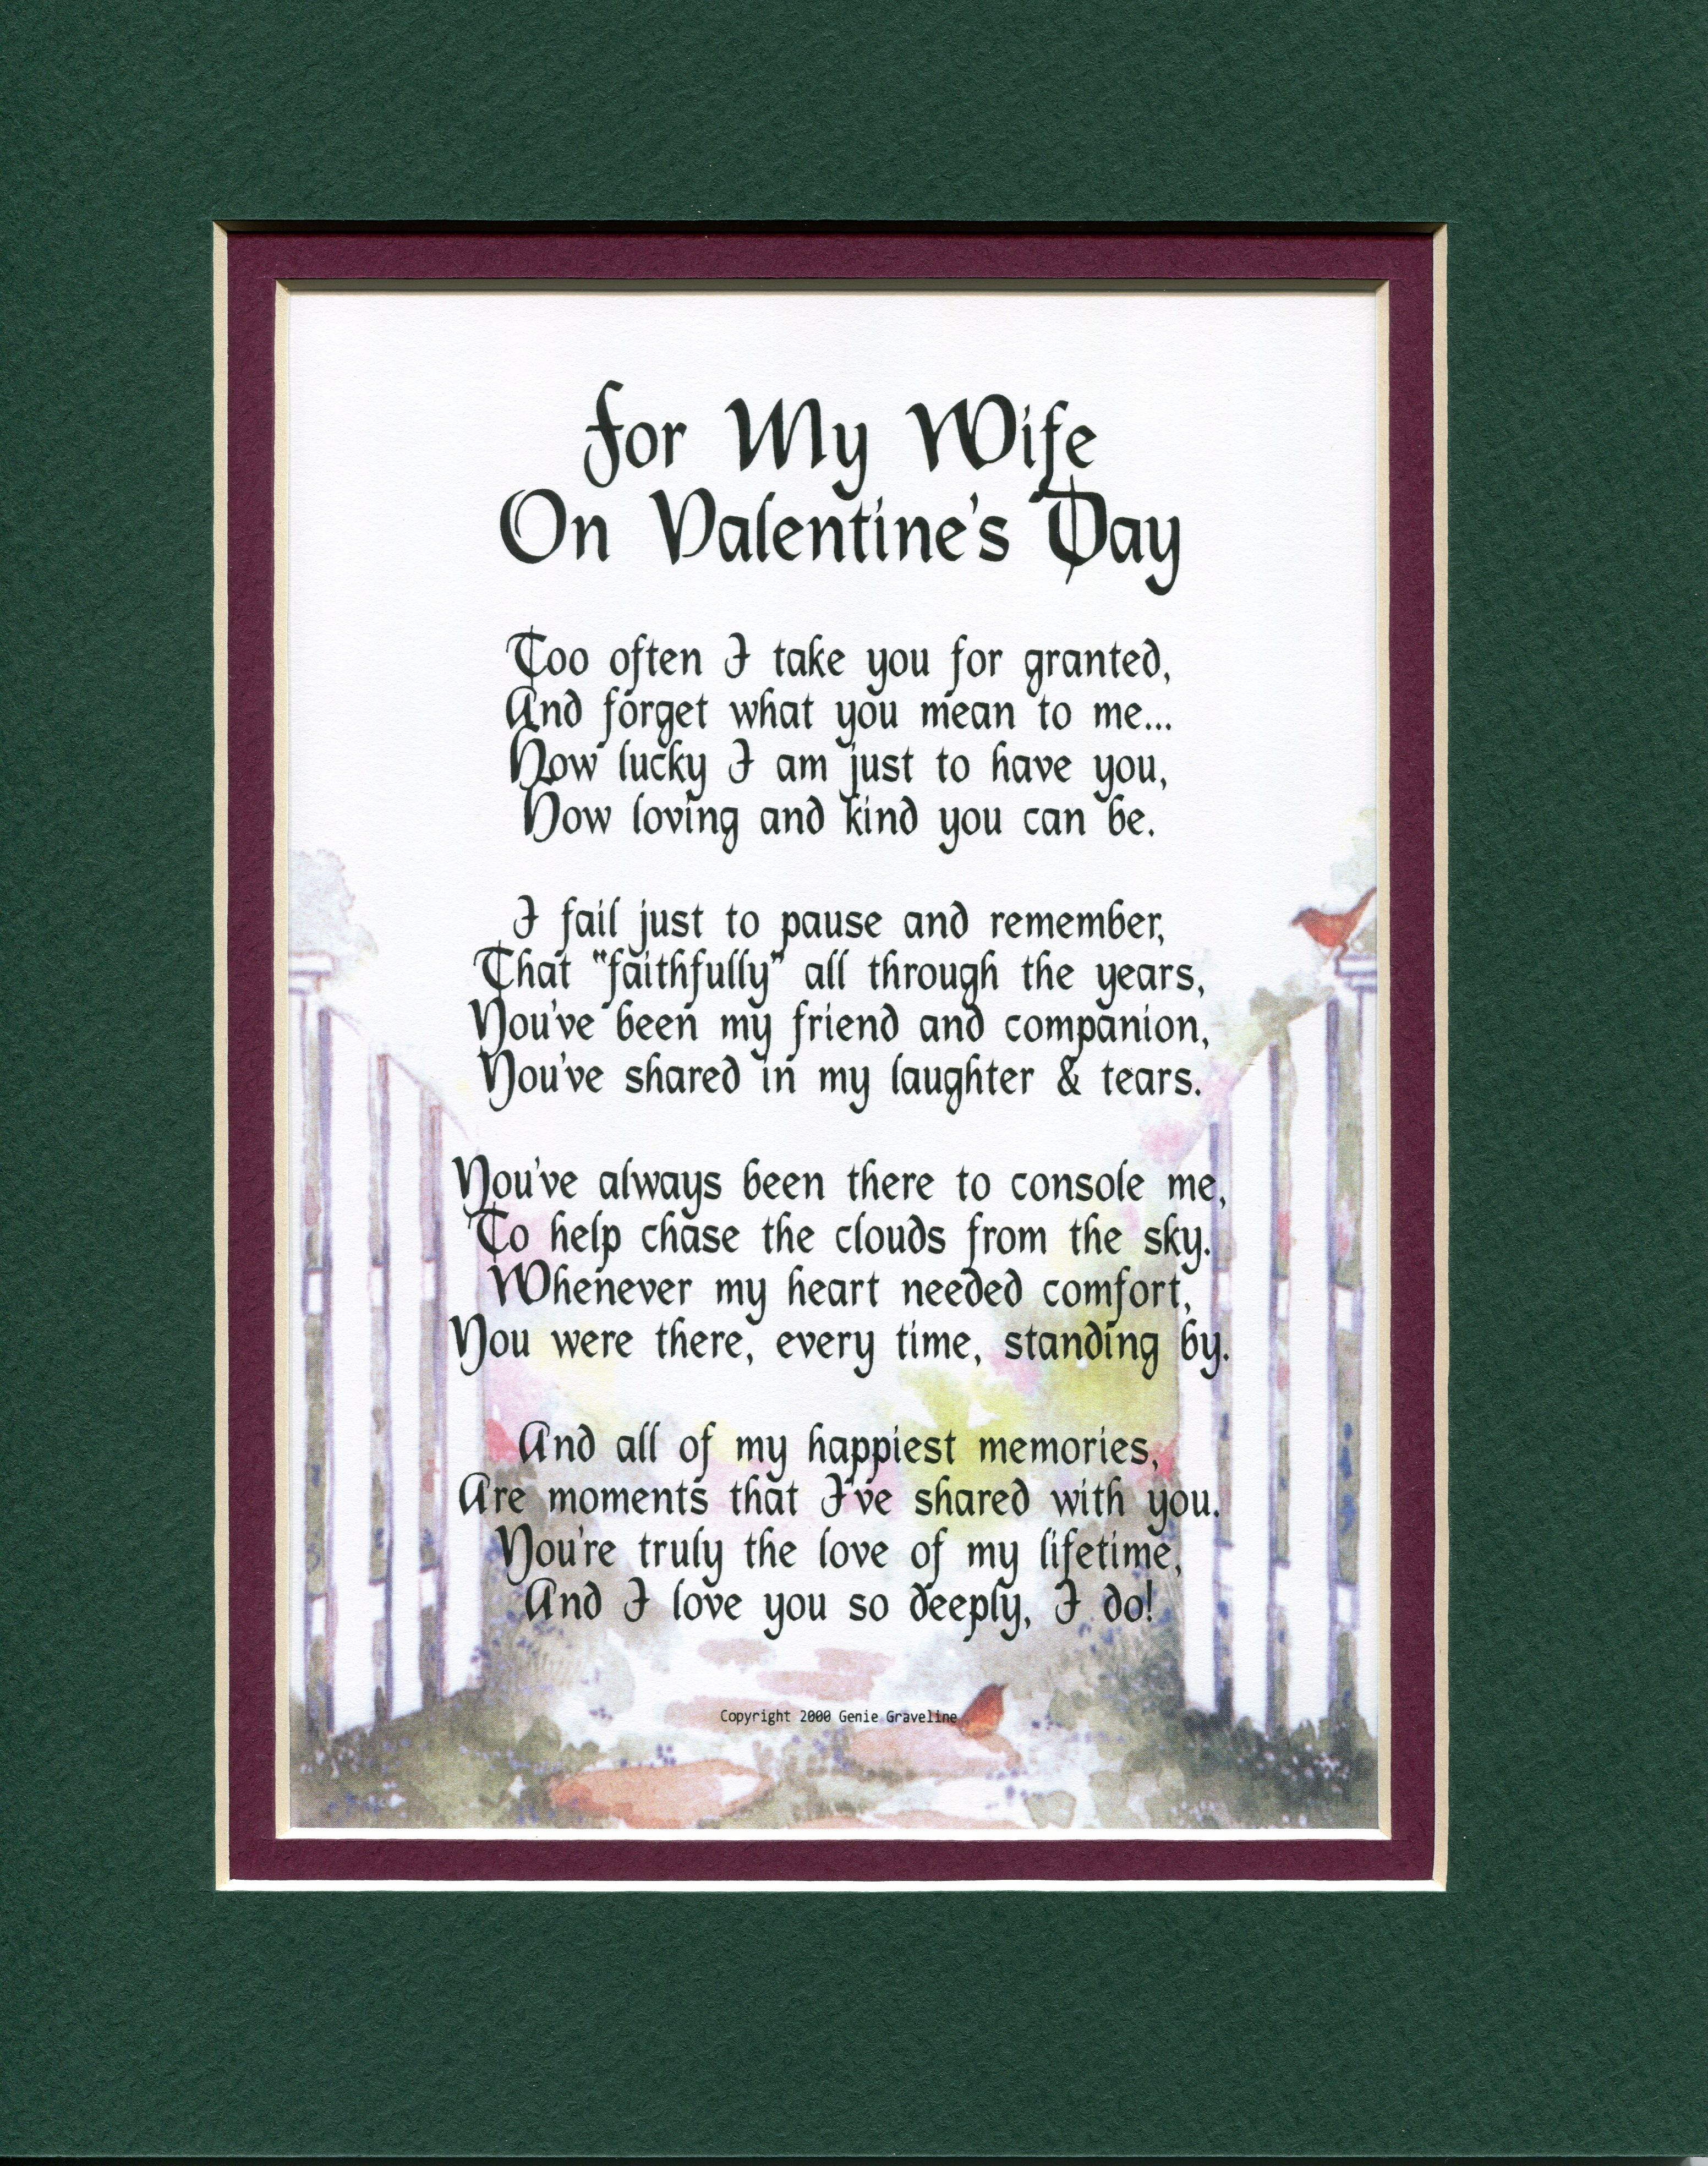 For My Wife On Valentines Day A Sentimental Gift For The One You